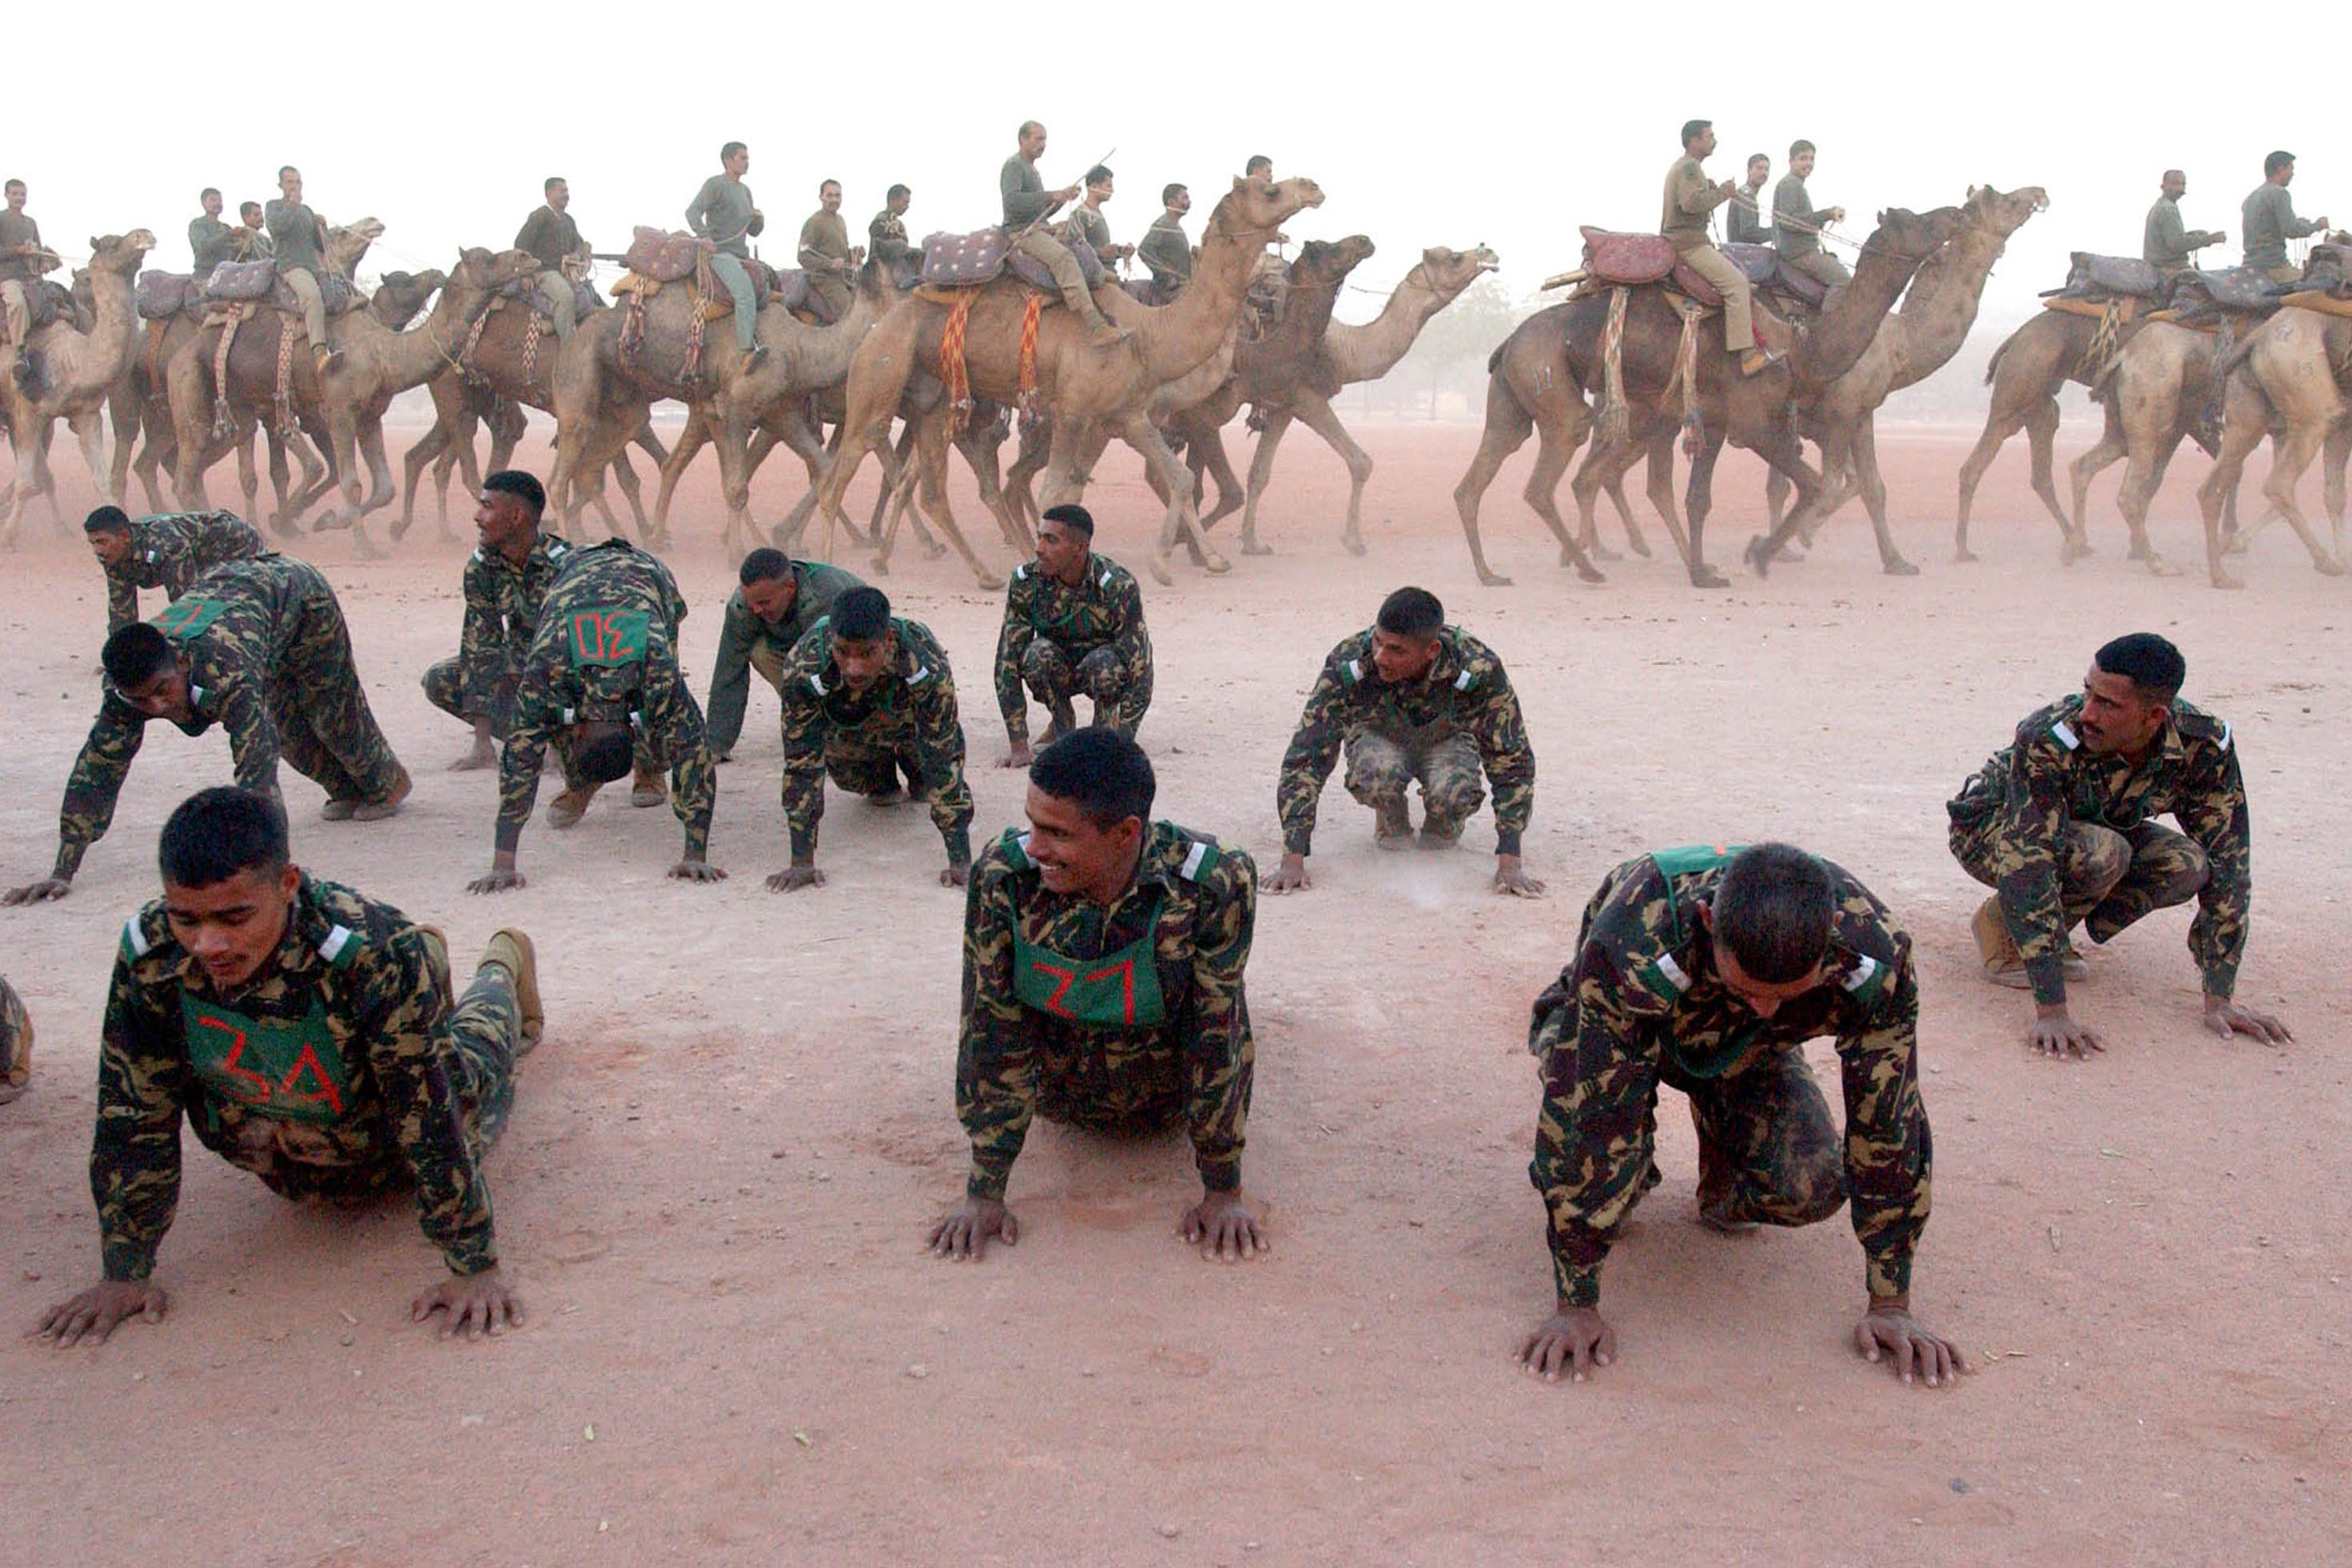 10 February 2004: Constables with India's Border Security Force do drills at a centre in Jodhpur where they train camels that can survive the harsh desert conditions in Rajasthan along the Pakistan border. (Photograph by Ami Vitale/ Getty Images)